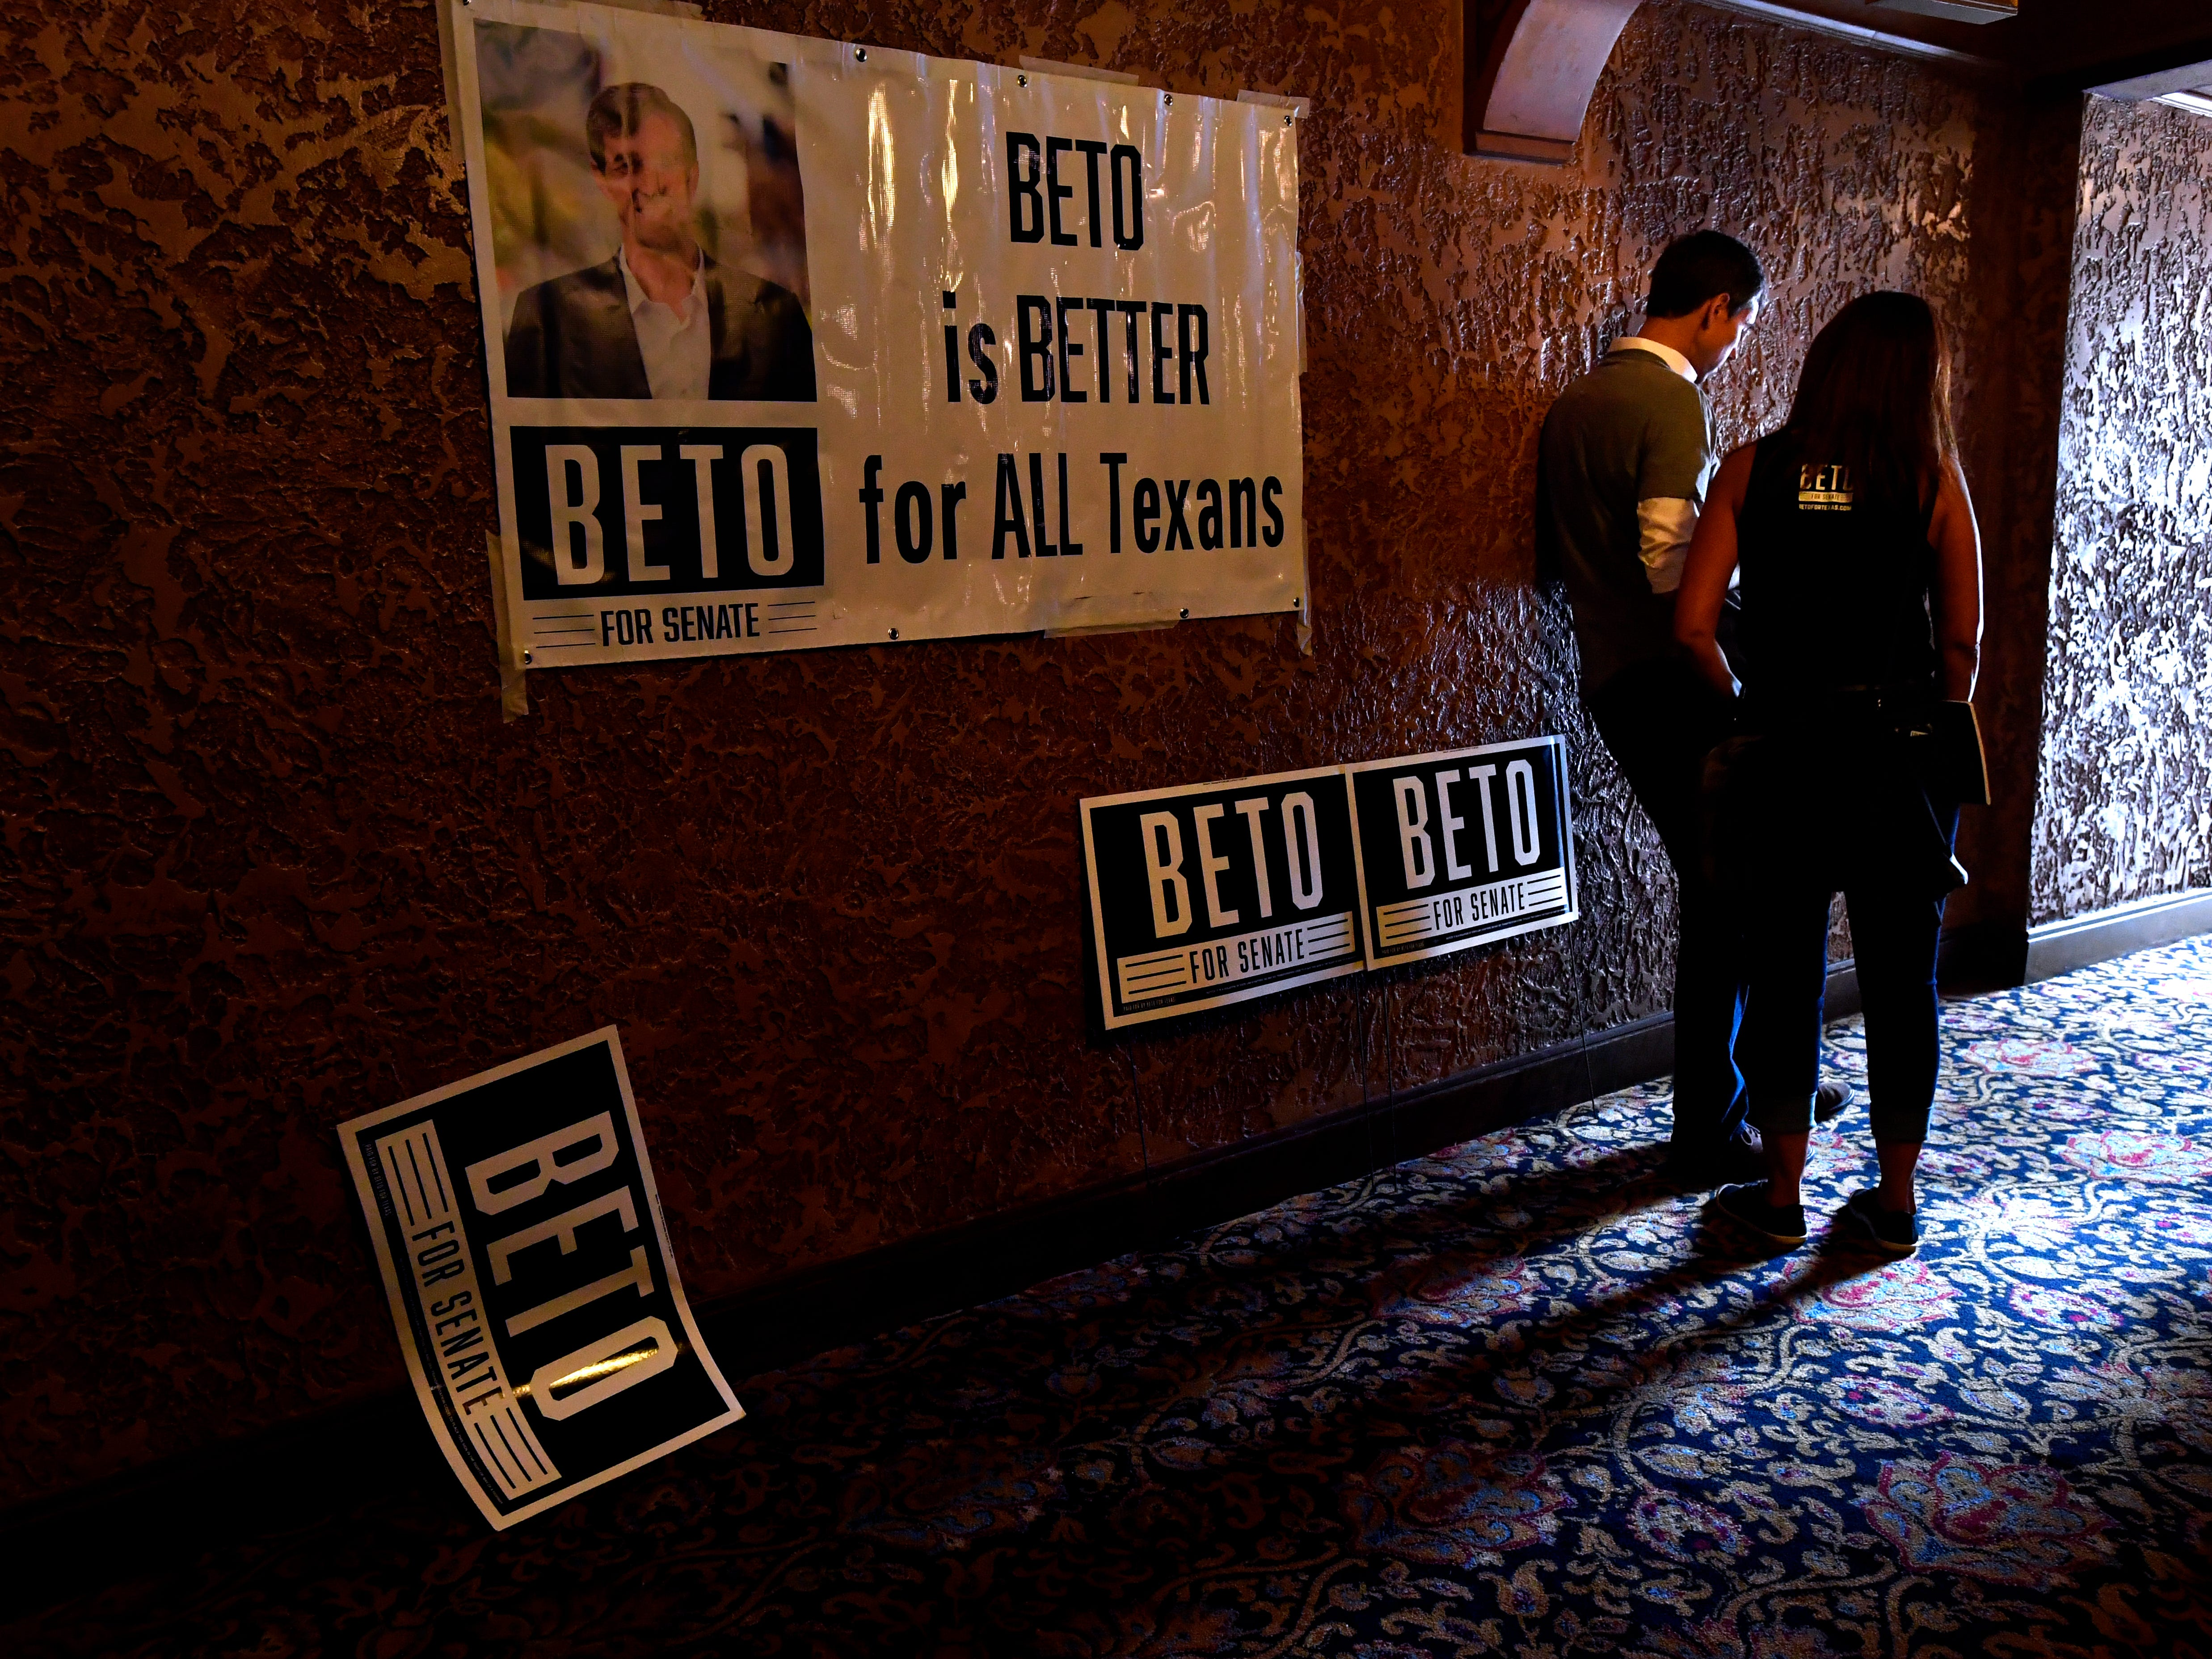 U.S. Senate candidate Beto O'Rourke reads a message on his phone with a member of his campaign staff after completing the photo line at a town hall meeting in the Paramount Theatre Thursday August 2, 2018. Four other Democratic candidates running for state office joined him during the event, speaking to a crowd of nearly 800 people.